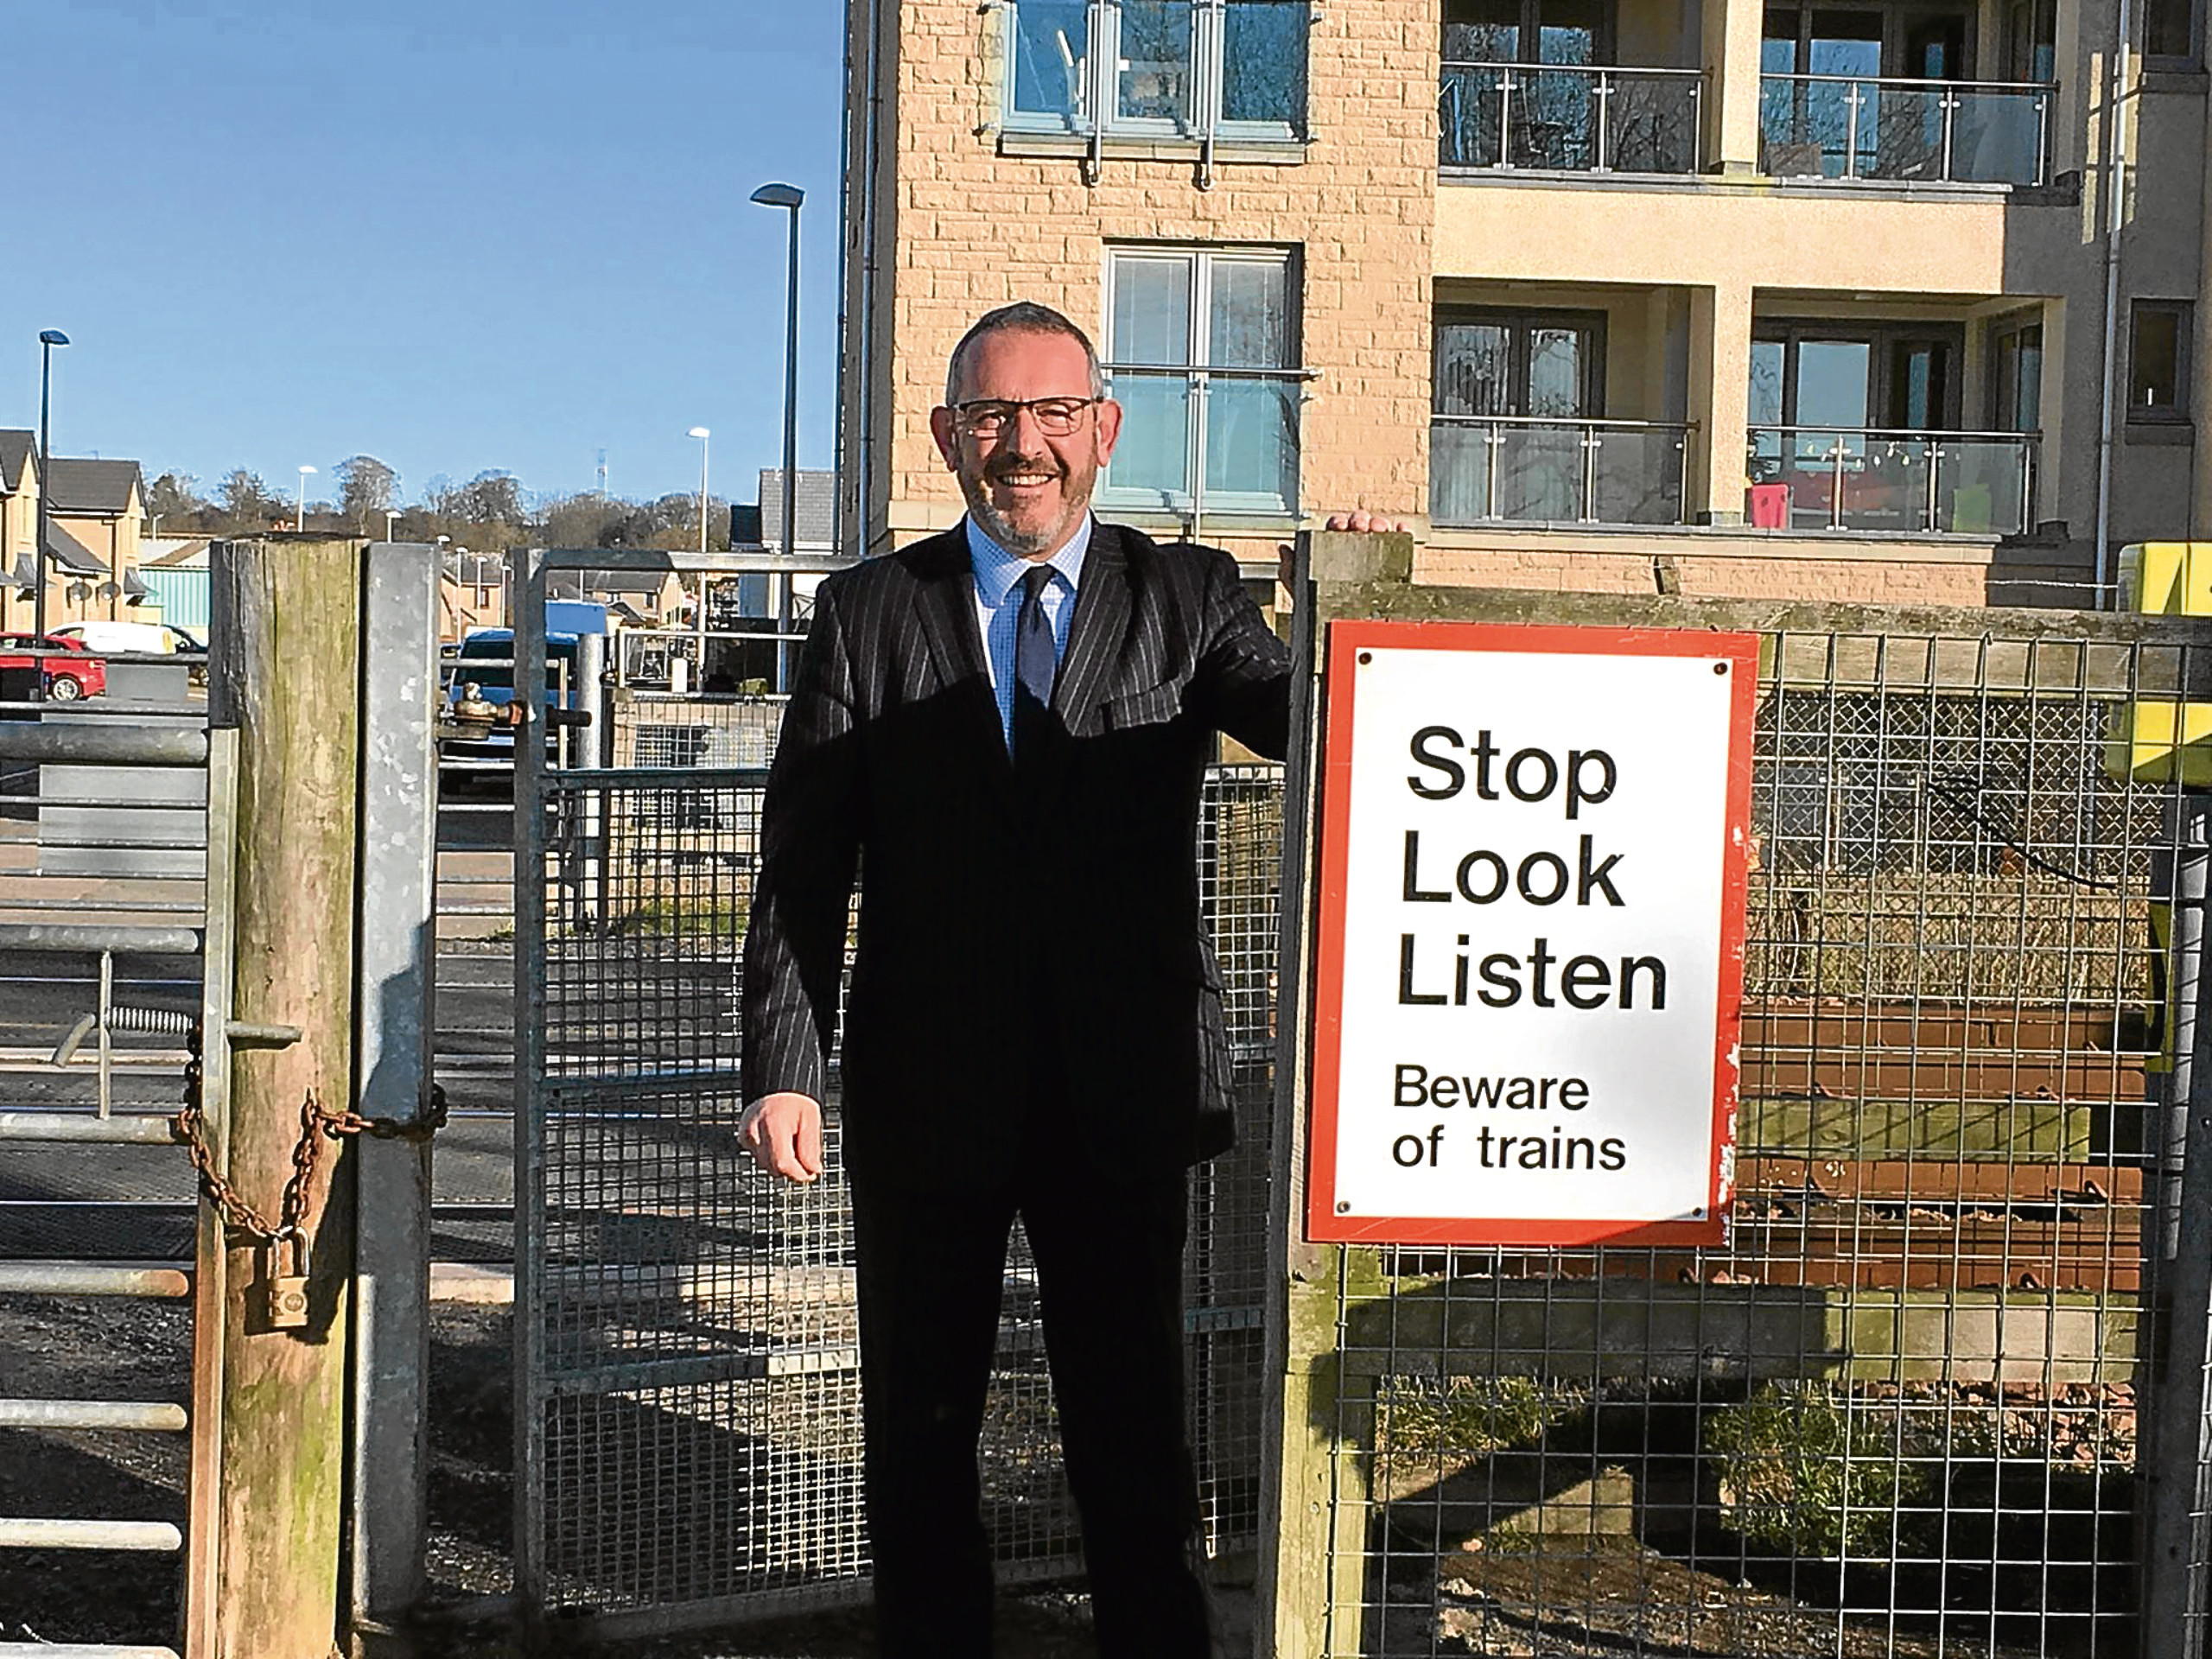 Mr Hosie is pictured at the repaired railway crossing gate.